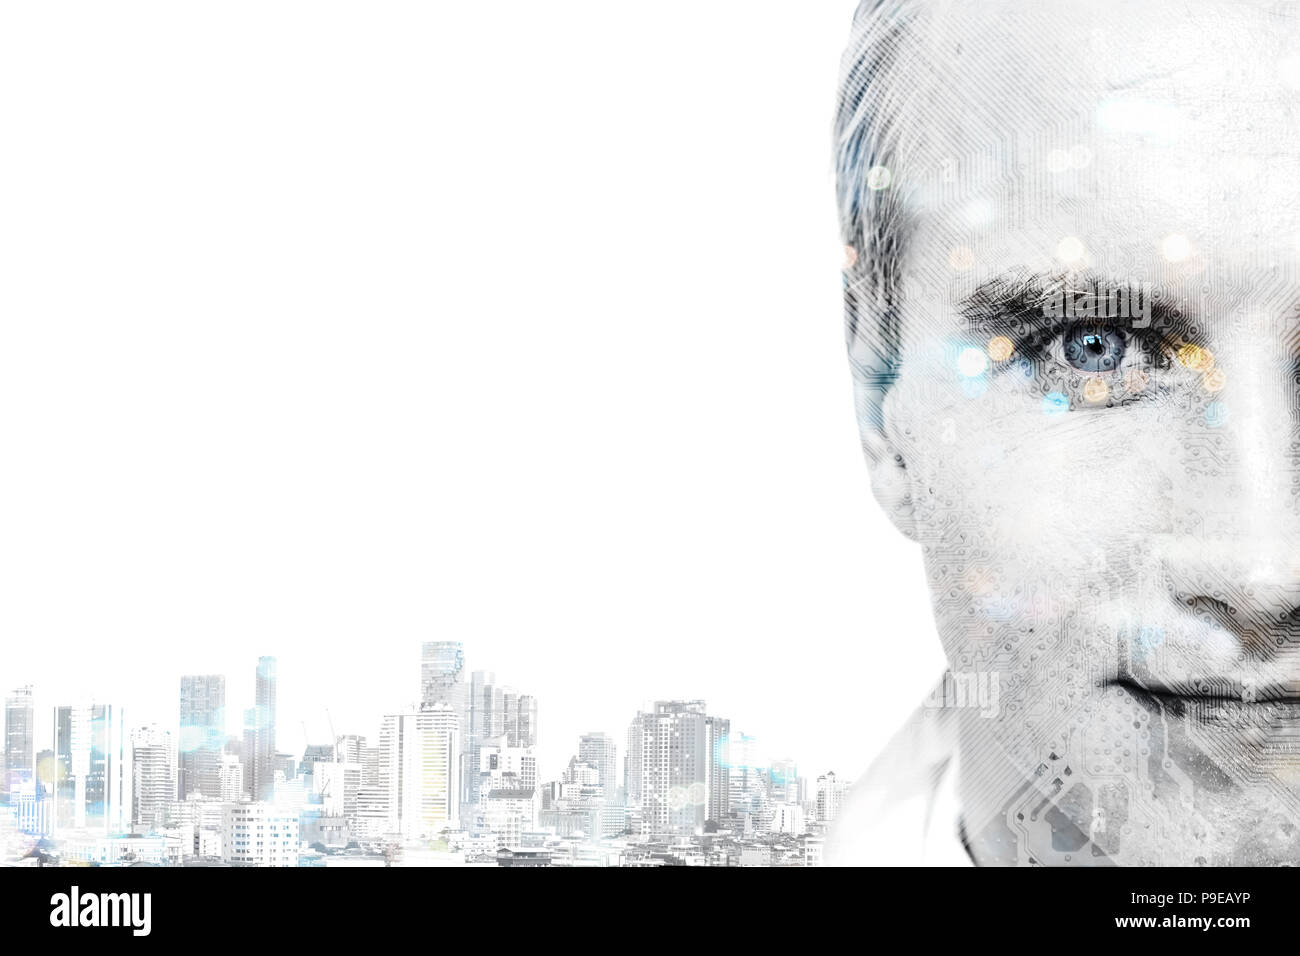 Space Transformation Stock Photos Circuit Board And Binary Code Forming A Mysterious Night Landscape Of Digital Disruption Every Industry Technology Artificial Intelligence Concept Double Exposure Male Face